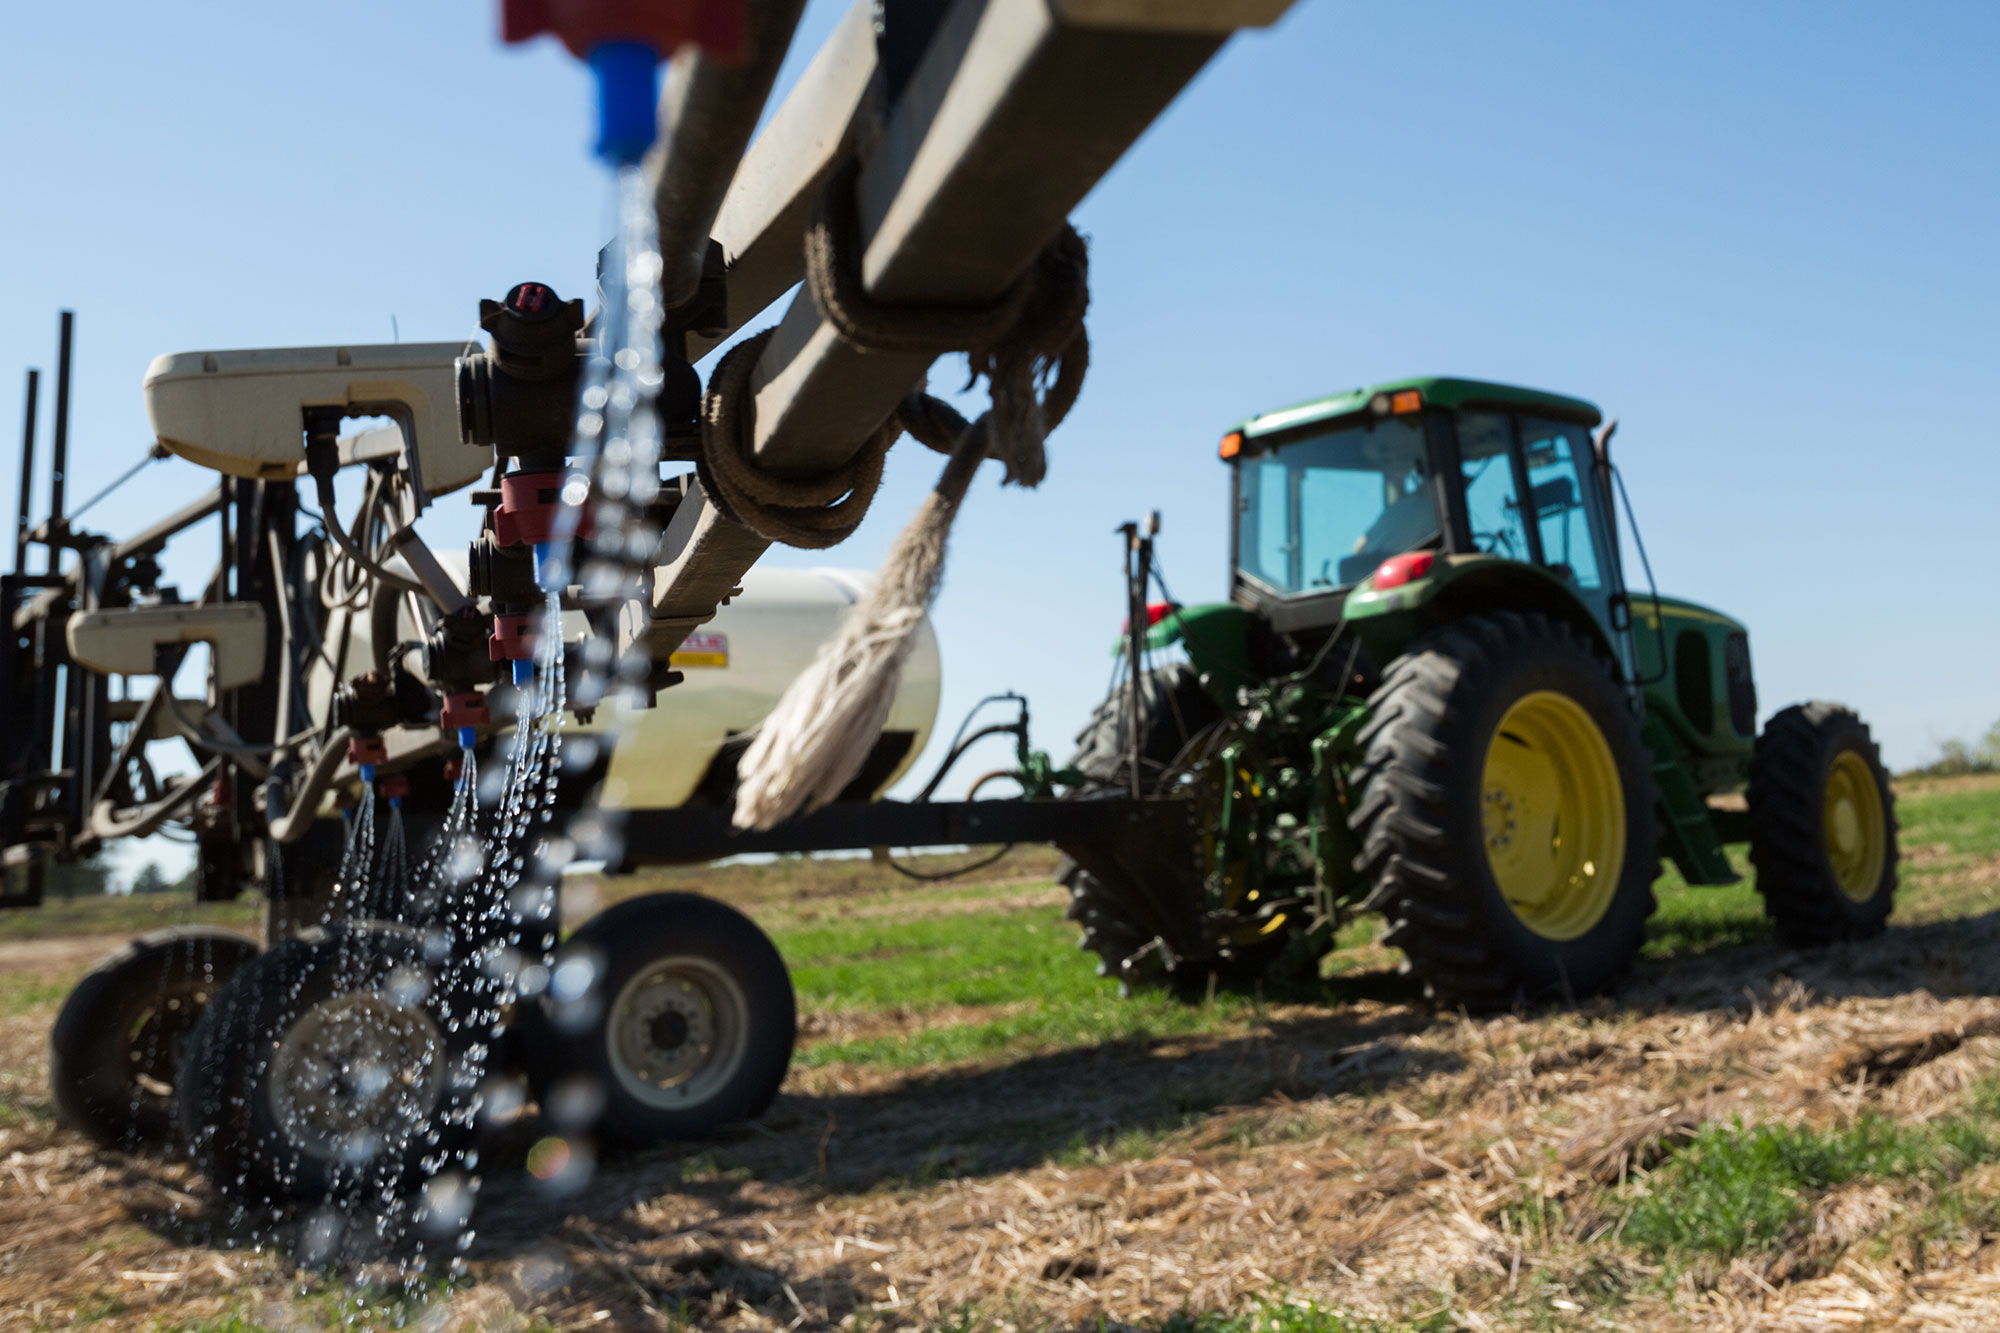 Tractor applies chemical weed control